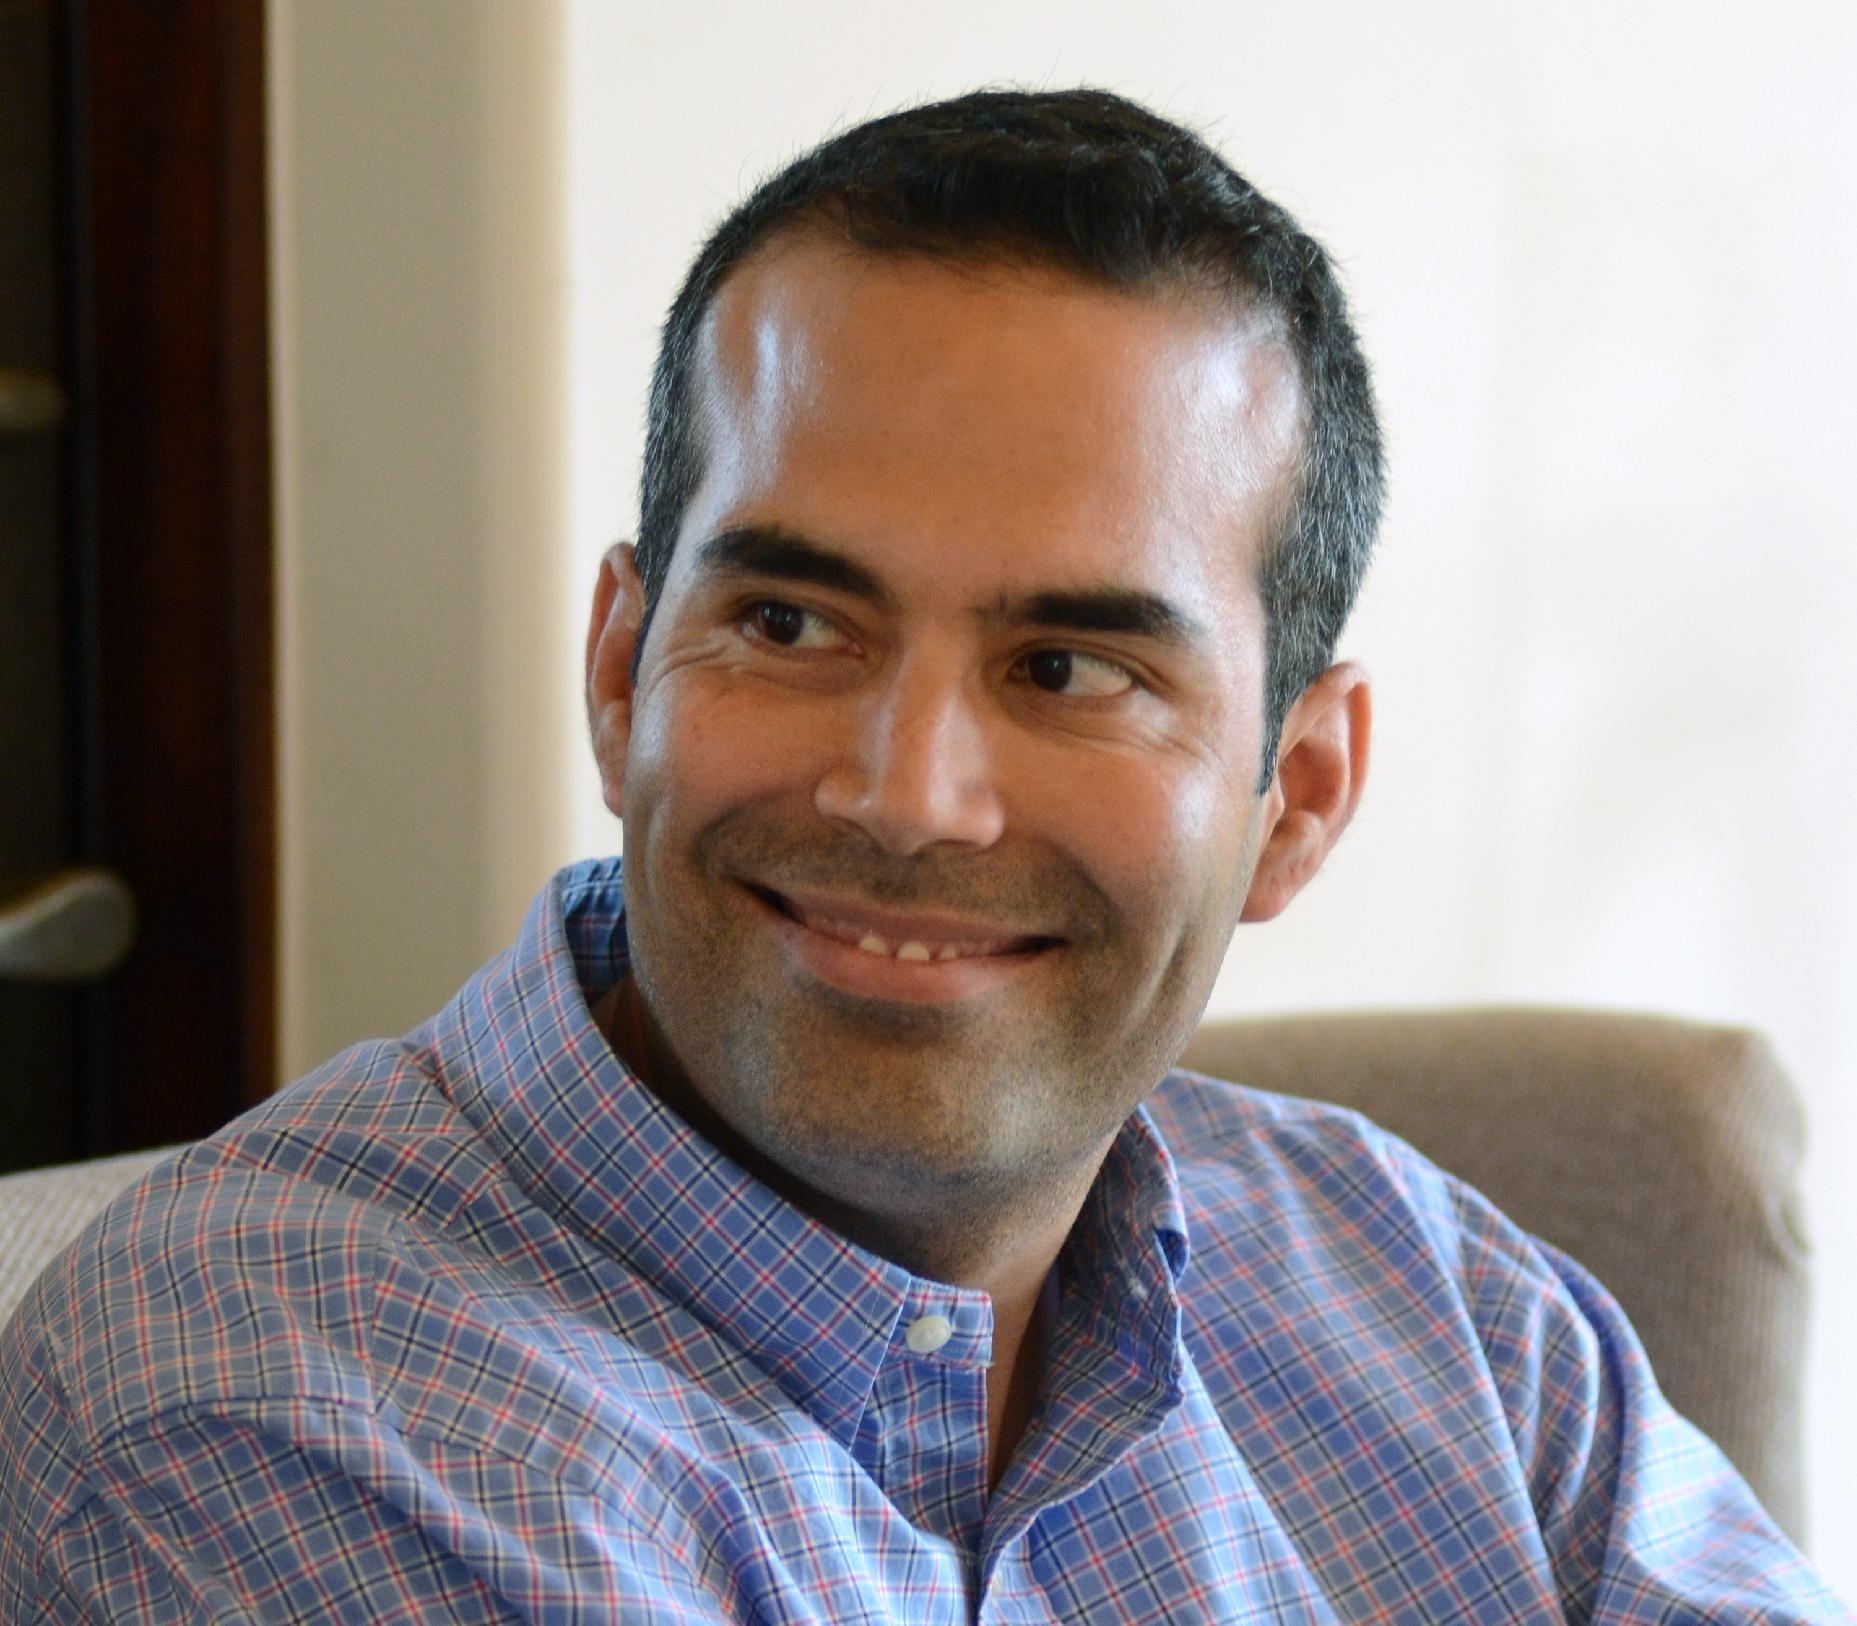 In this photo taken June 25, 2013, George P. Bush, 37, smiles during an interview with The Associated Press in Frisco, Texas. Bush is running for Texas Land Commissioner, a post unfamiliar to most Texans, because he says it best suits his skills, not because it could launch him to bigger things in America's largest red state. Born in Houston, Bush grew up in Florida, graduated from and played baseball for Rice University in Houston before teaching school in inner-city Miami and working on George W. Bush's presidential campaign. He earned a law degree from the University of Texas and clerked for a federal judge, then founded a capital company in Fort Worth. He served an eight-month tour in Afghanistan in 2010 with U.S. Naval Intelligence. Bush is on the board of Uplift Education, a major charter school operator in North Texas, and is a strong proponent of school choice for all families. (AP Photo/Benny Snyder)